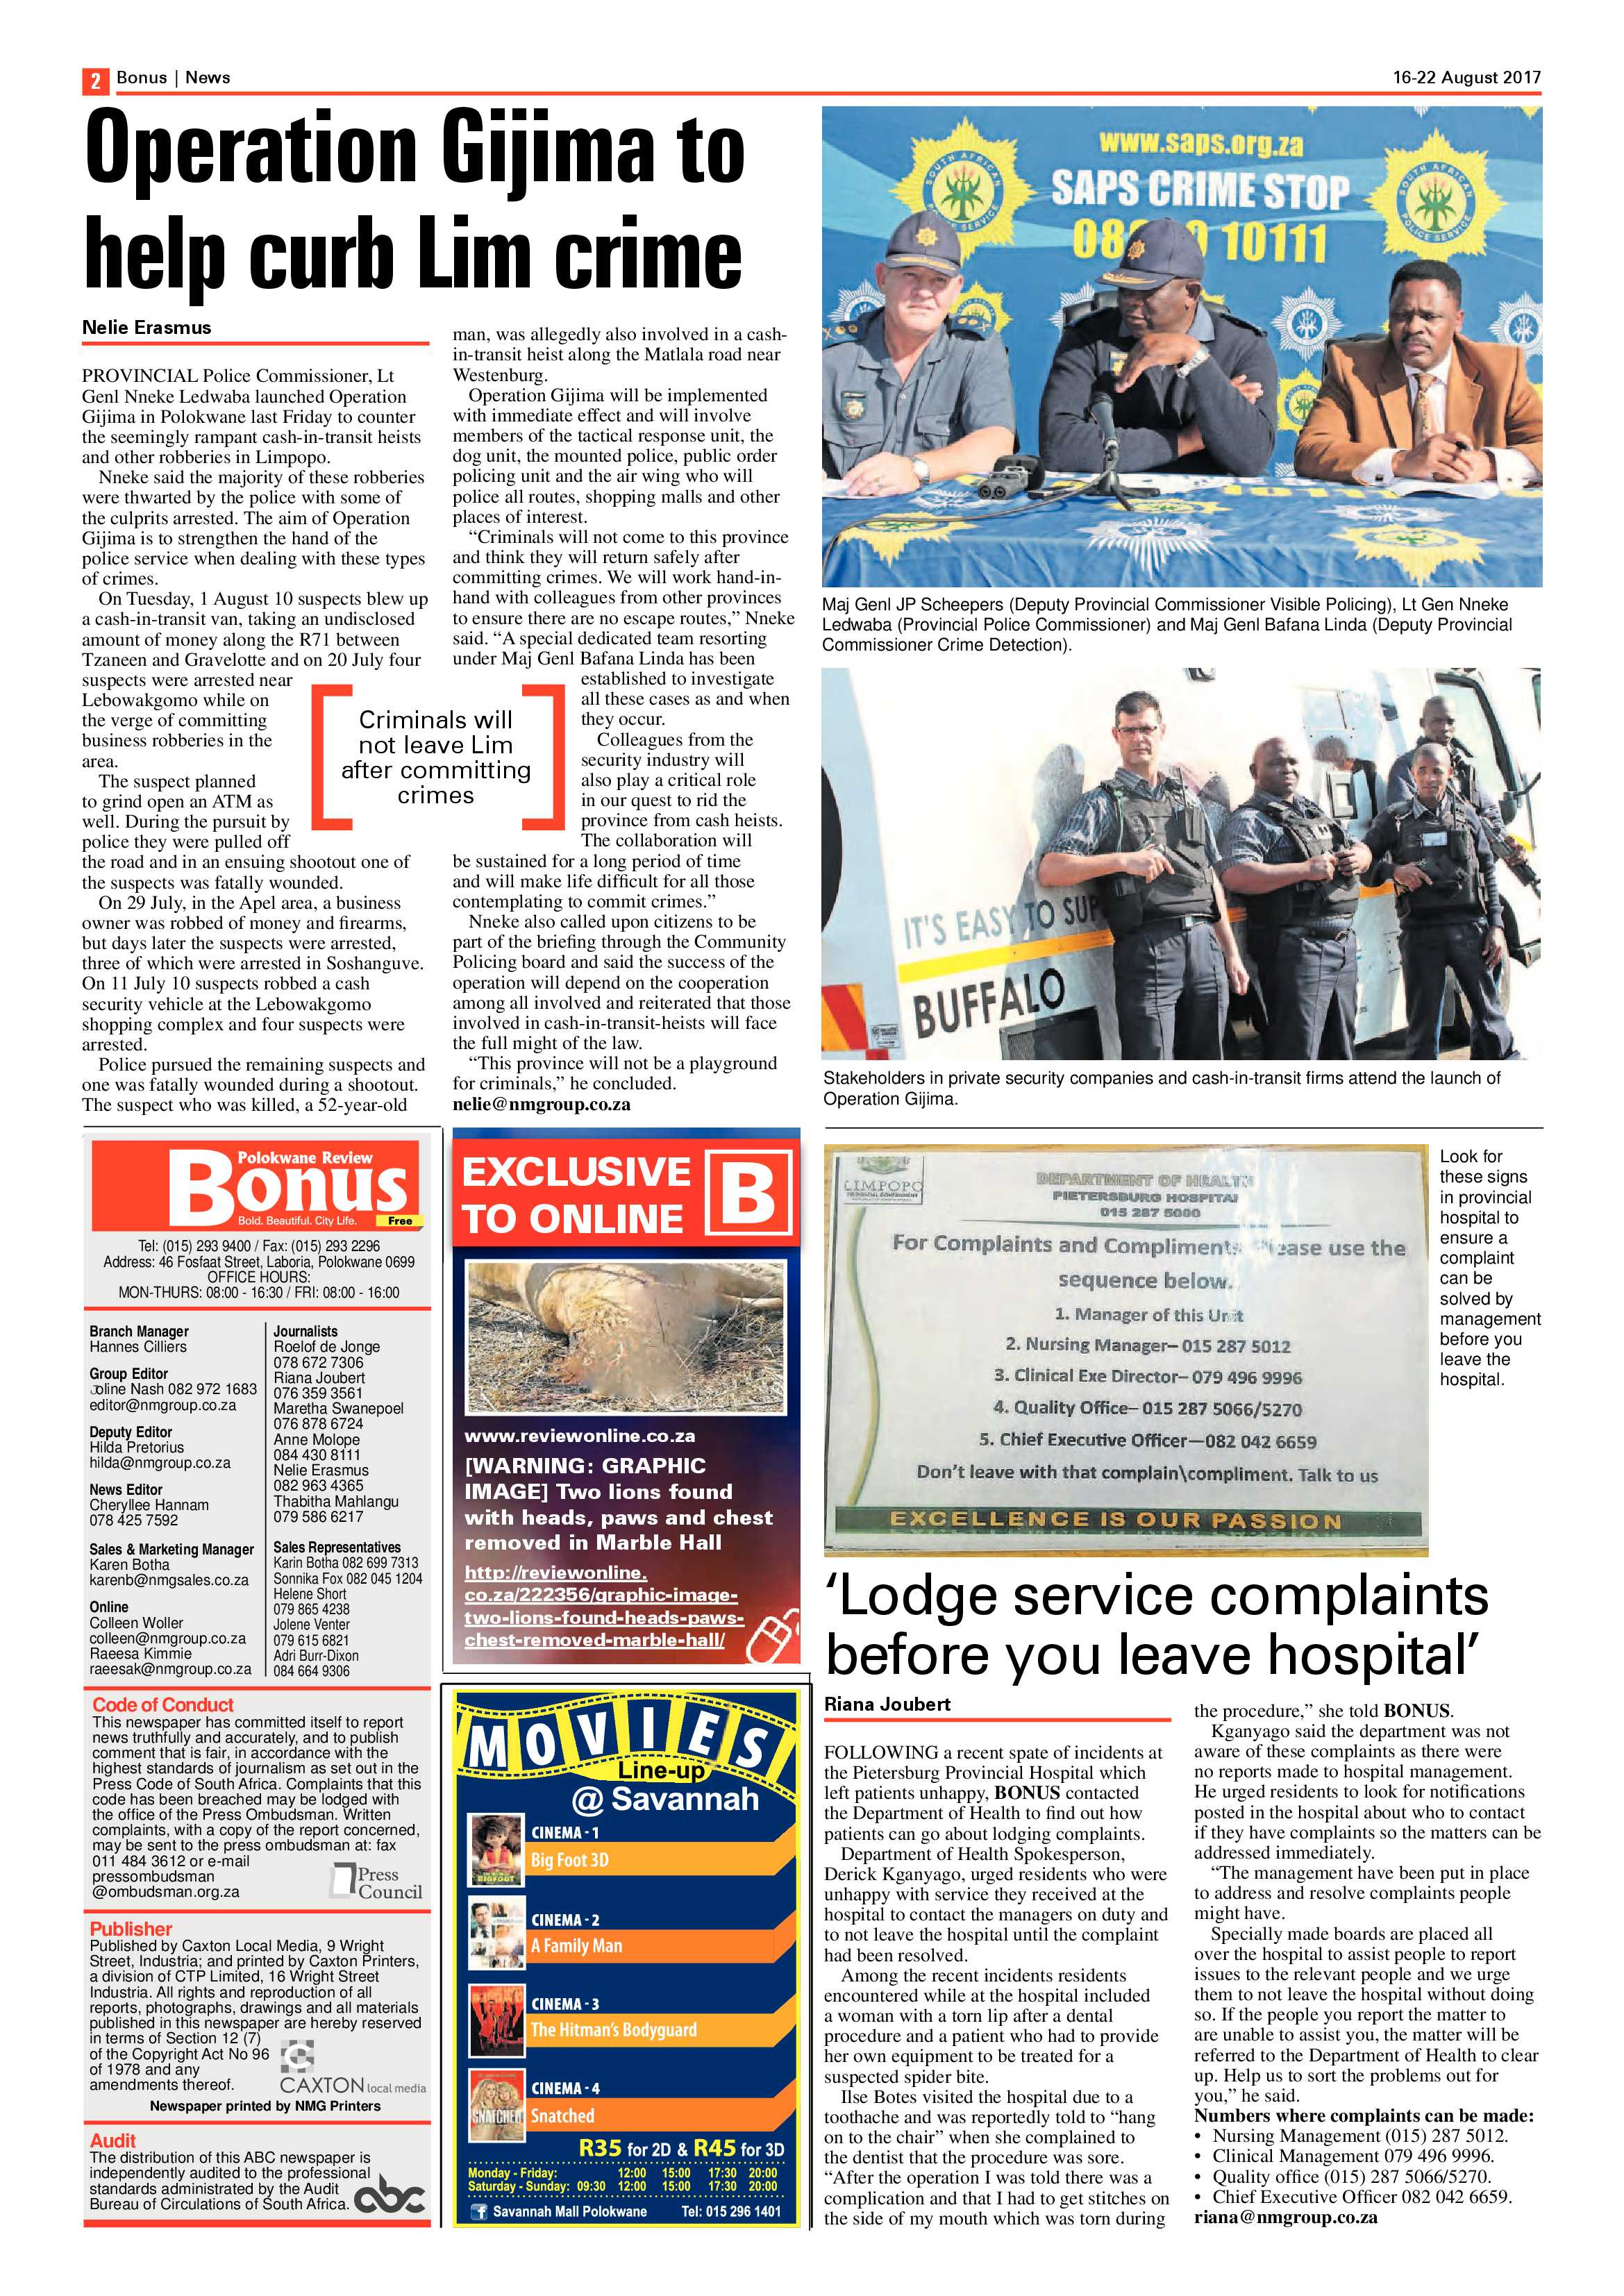 review-bonus-16-august-2017-epapers-page-2